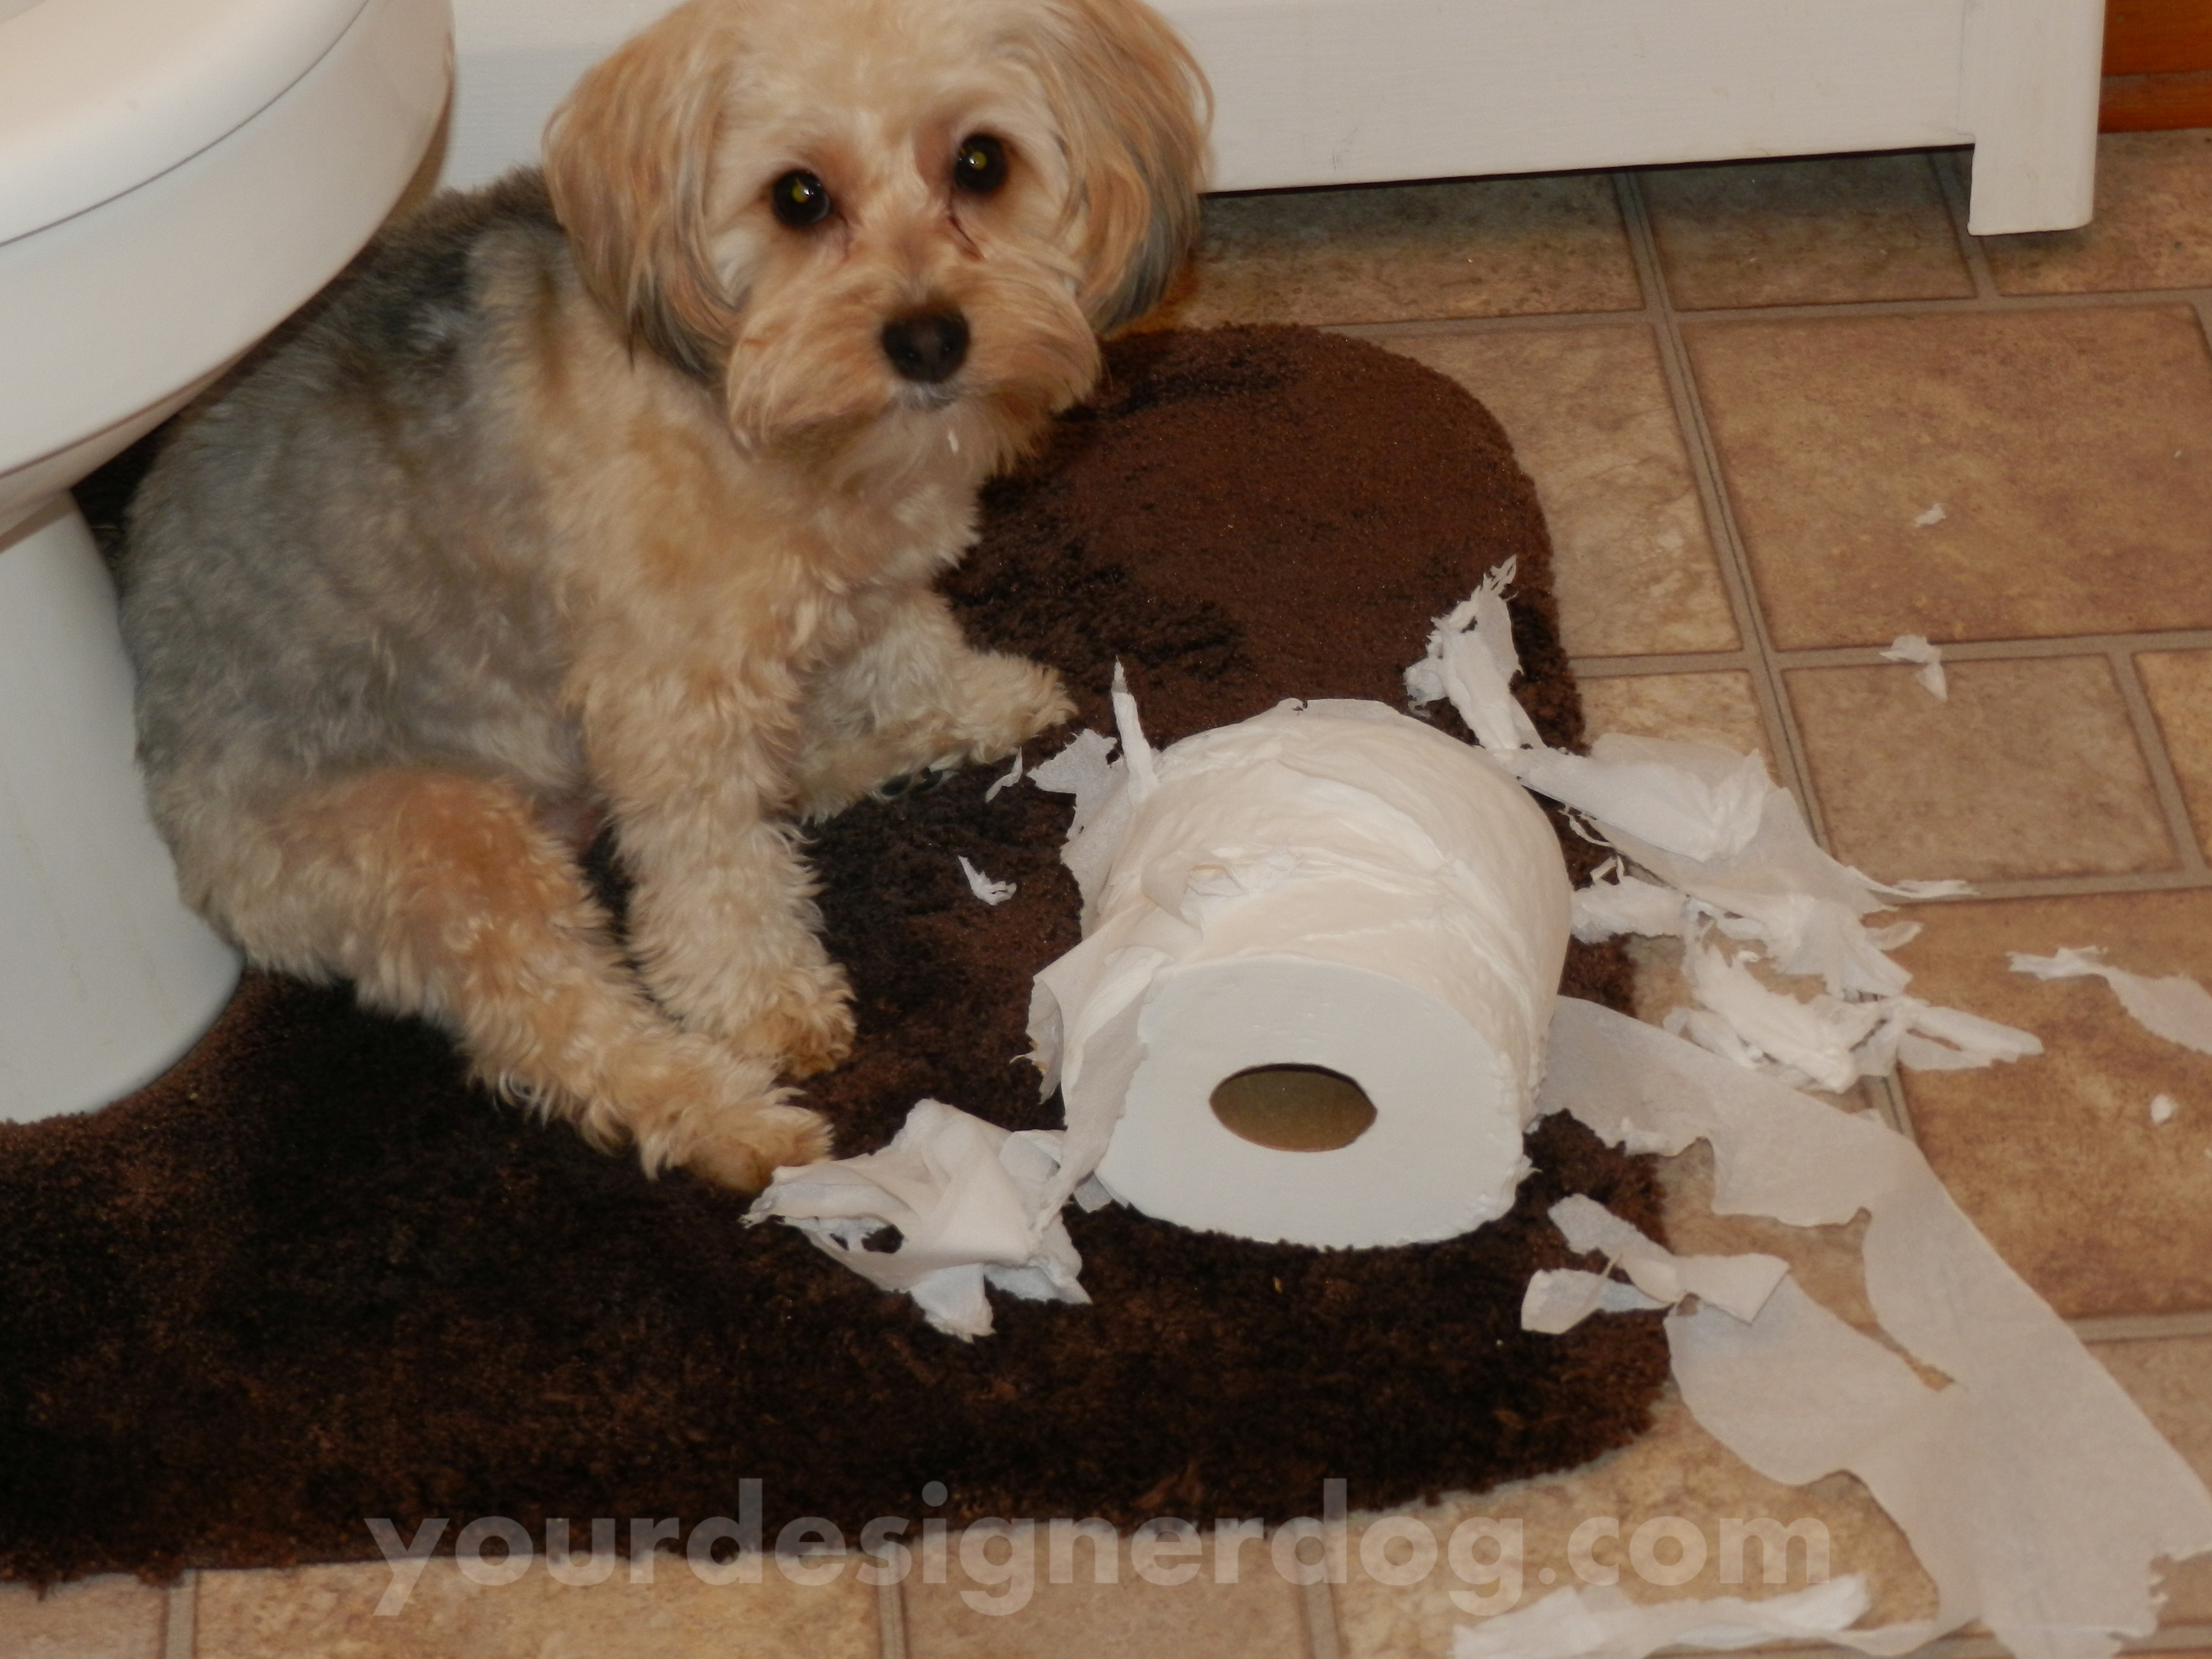 The Temptation of TP